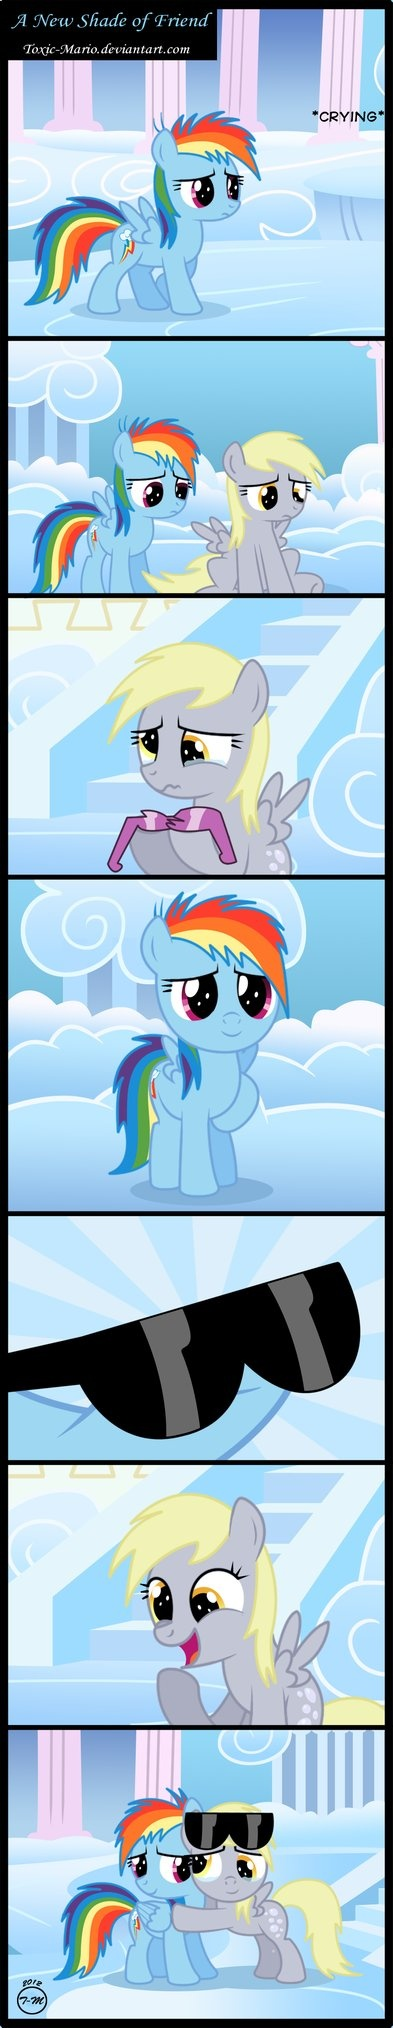 A New Shade of Friend by *Toxic-Mario | My Little Pony ...